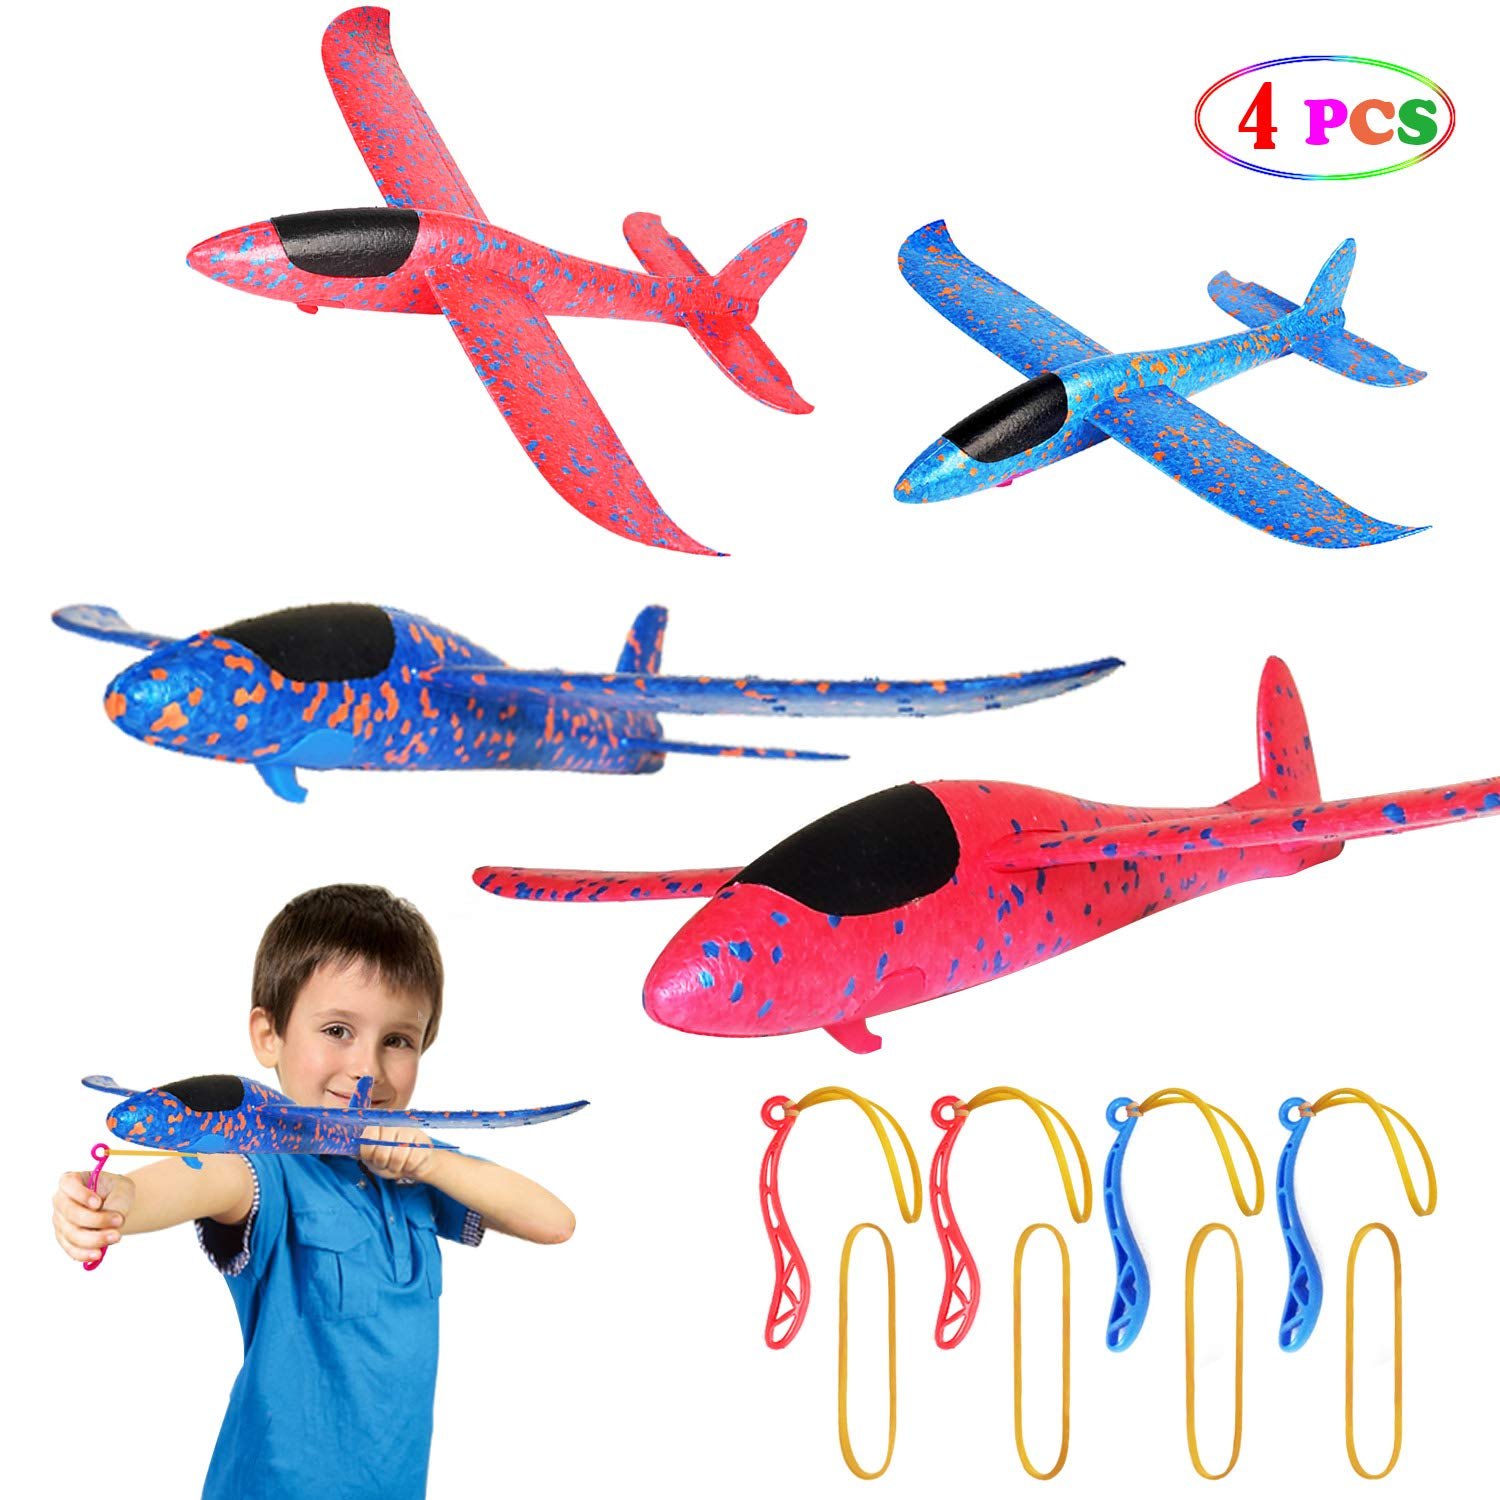 MIMIDOU 4 Pcs Catapult Slingshot Plane 2 Flight Mode Glider Airplane 2 Ways to Play Outdoor Flying Toy for Kids as Gift. by MIMIDOU